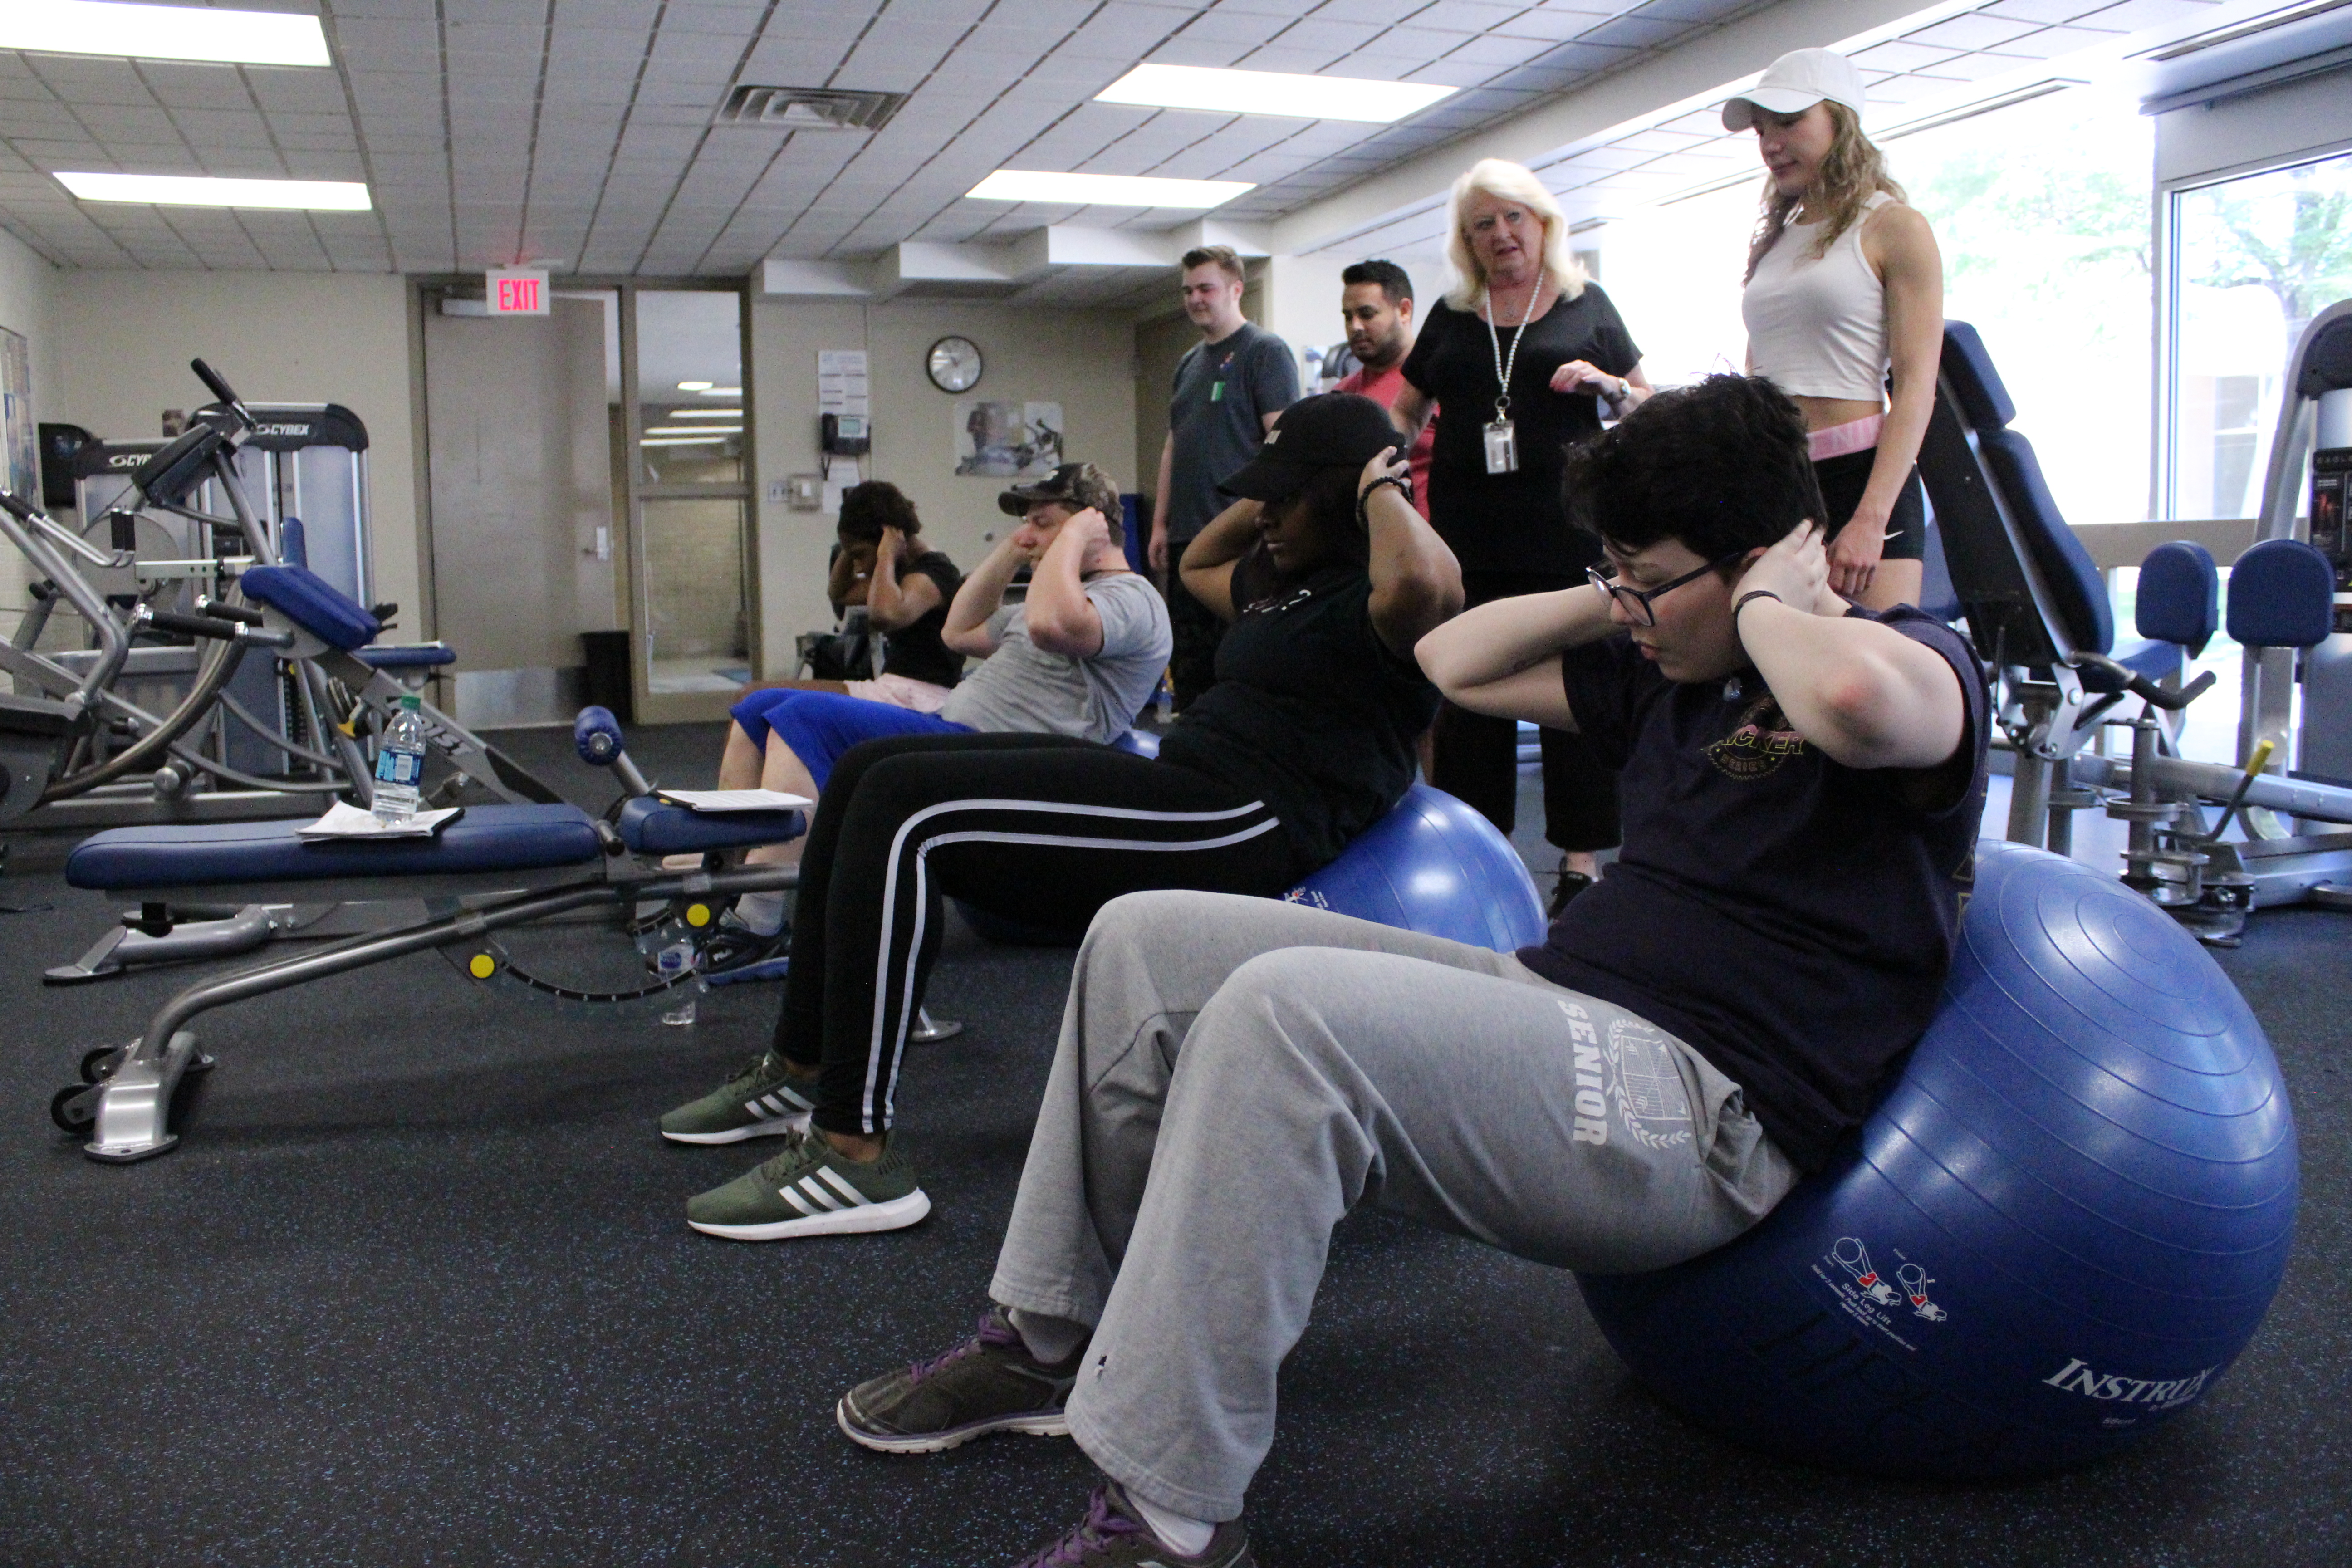 Photo of fitness class using exercise balls